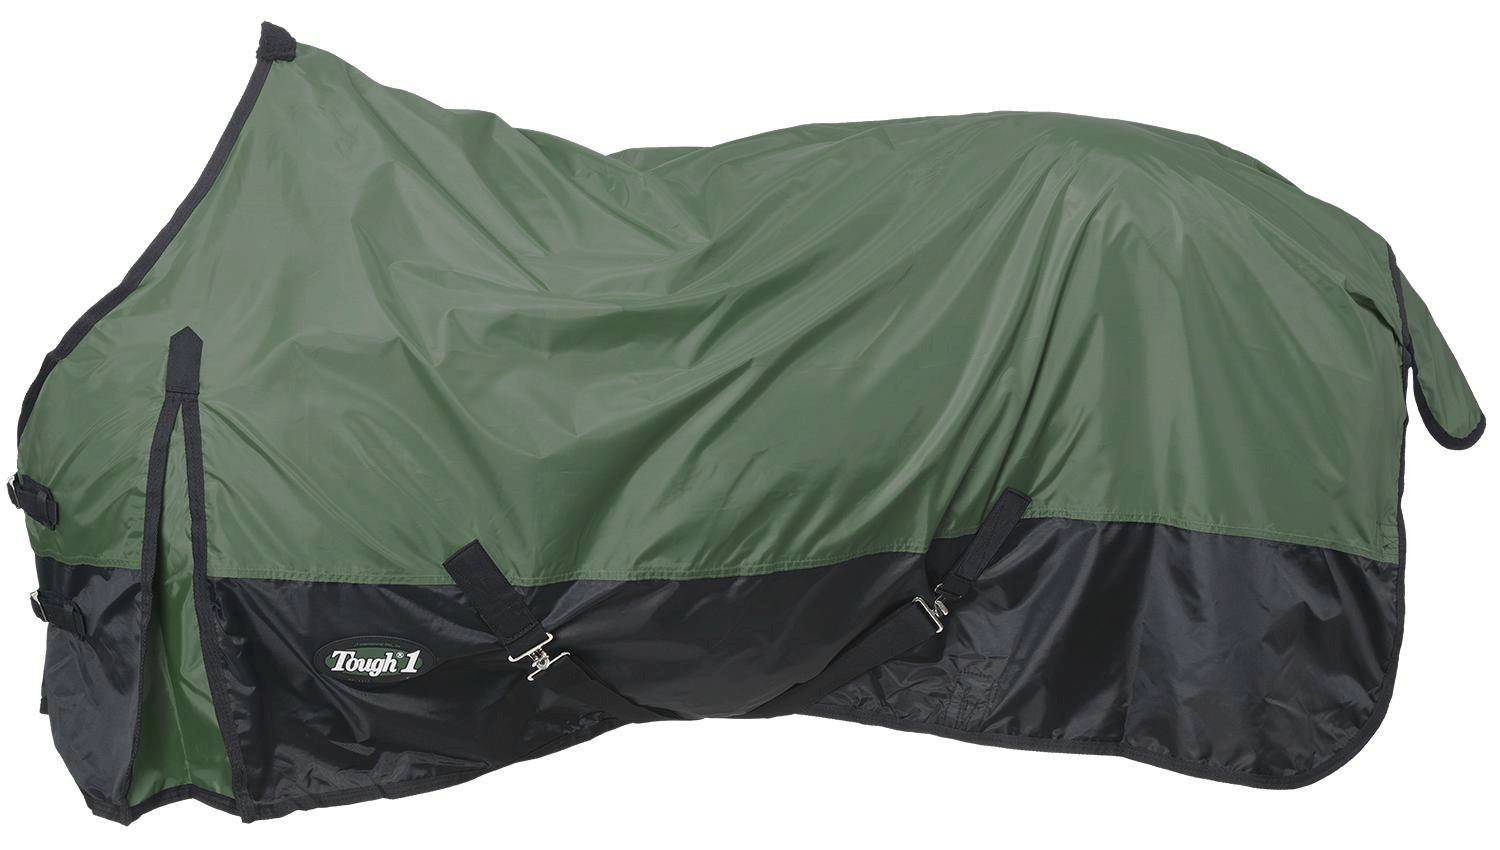 Tough-1 420D Waterproof Sheet